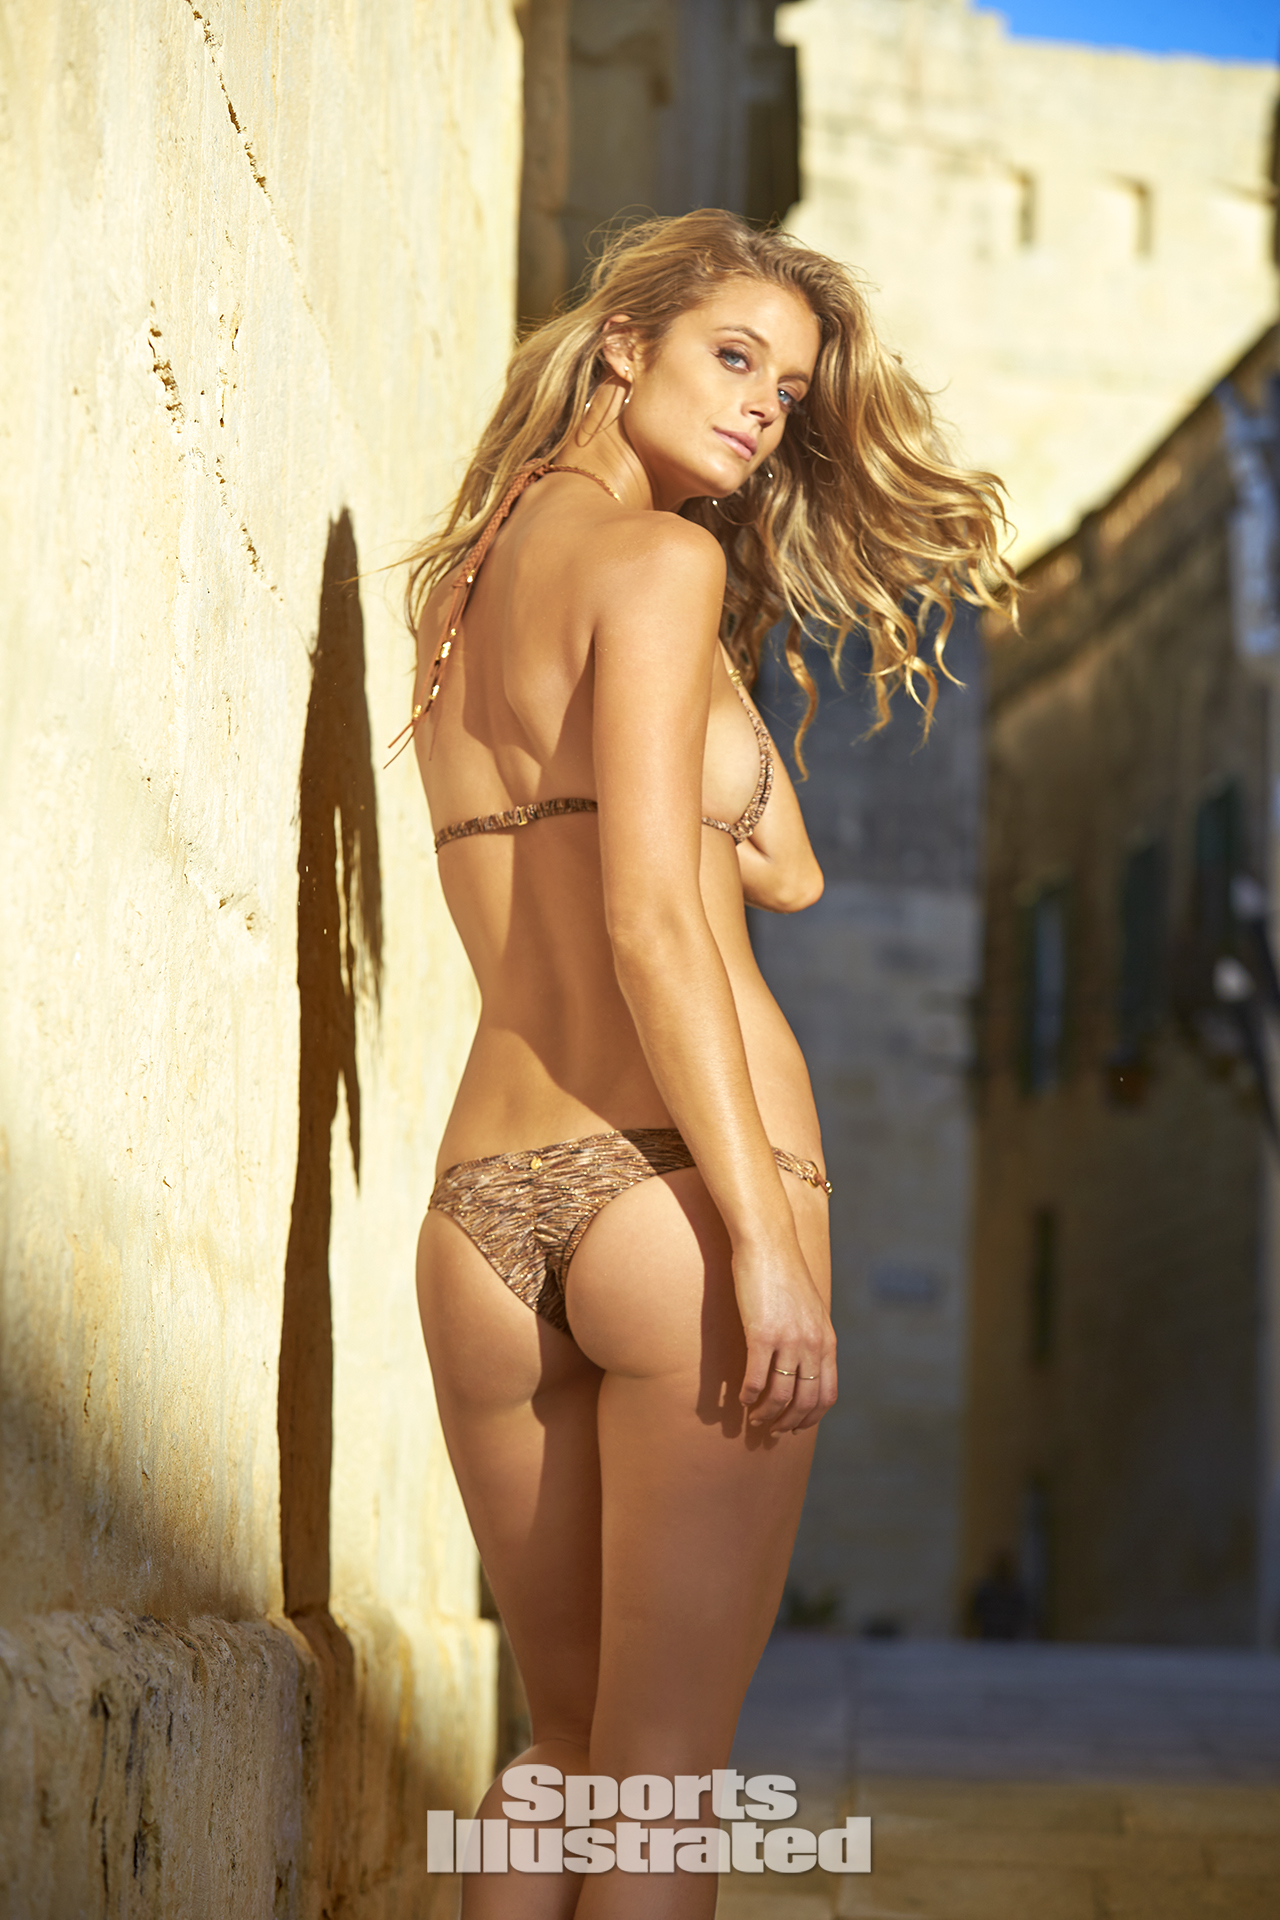 Kate Bock was photographed by Ben Watts in Malta.